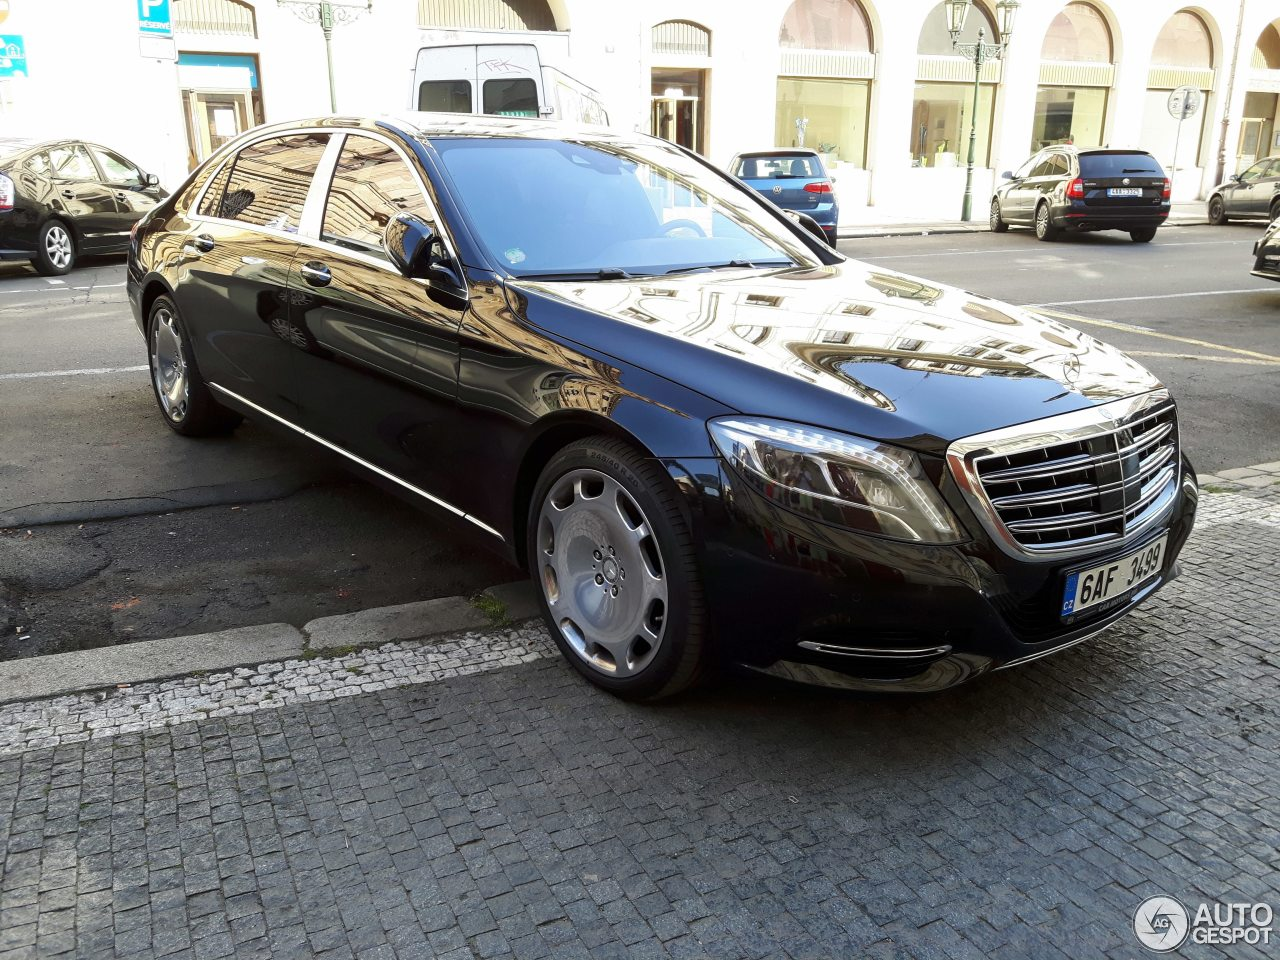 Mercedes maybach s600 10 august 2017 autogespot for 2017 mercedes benz s600